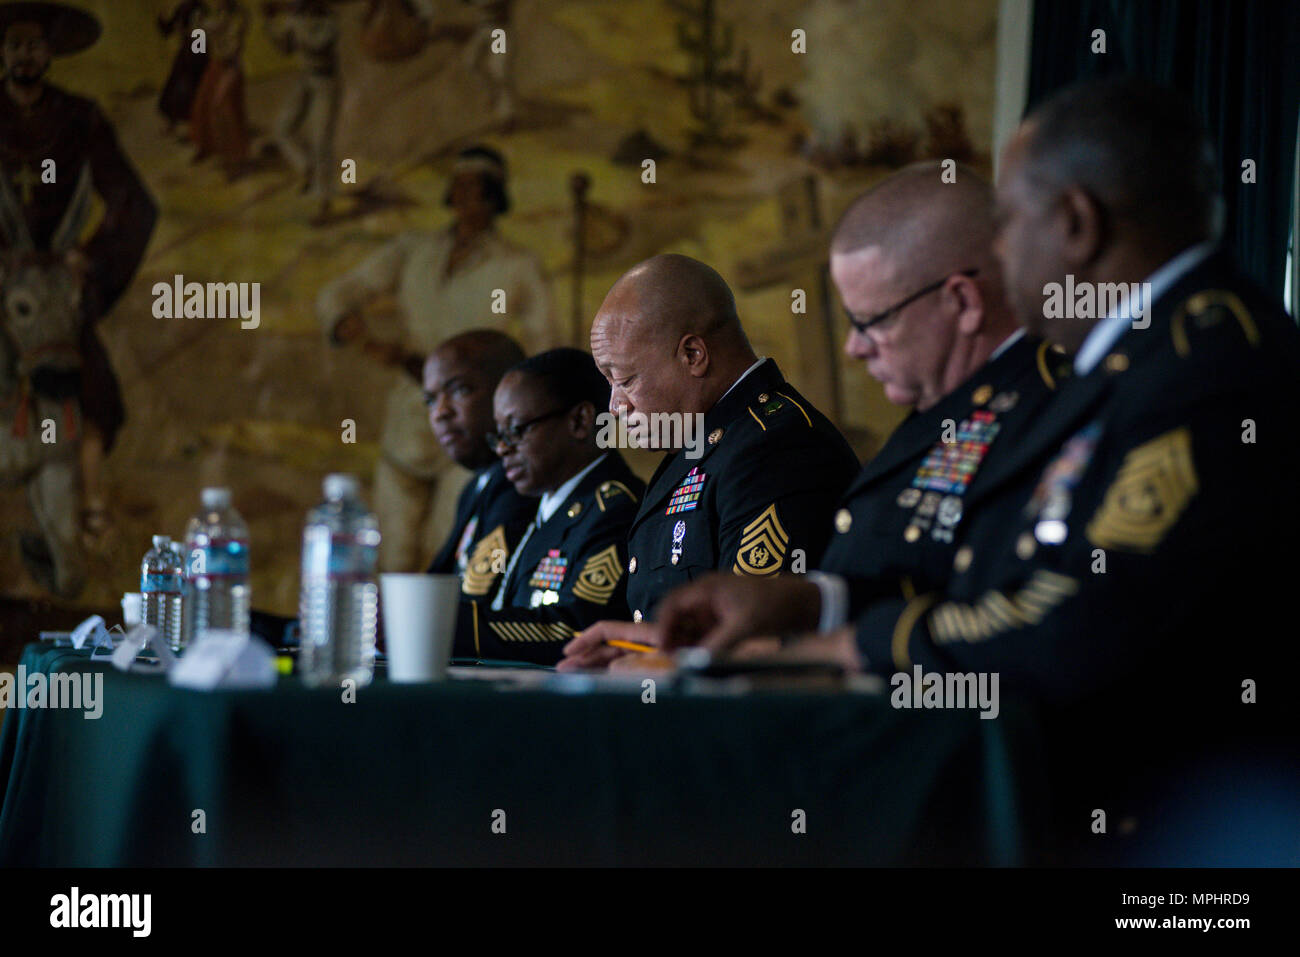 Police Sergeants Stock Photos & Police Sergeants Stock Images - Page